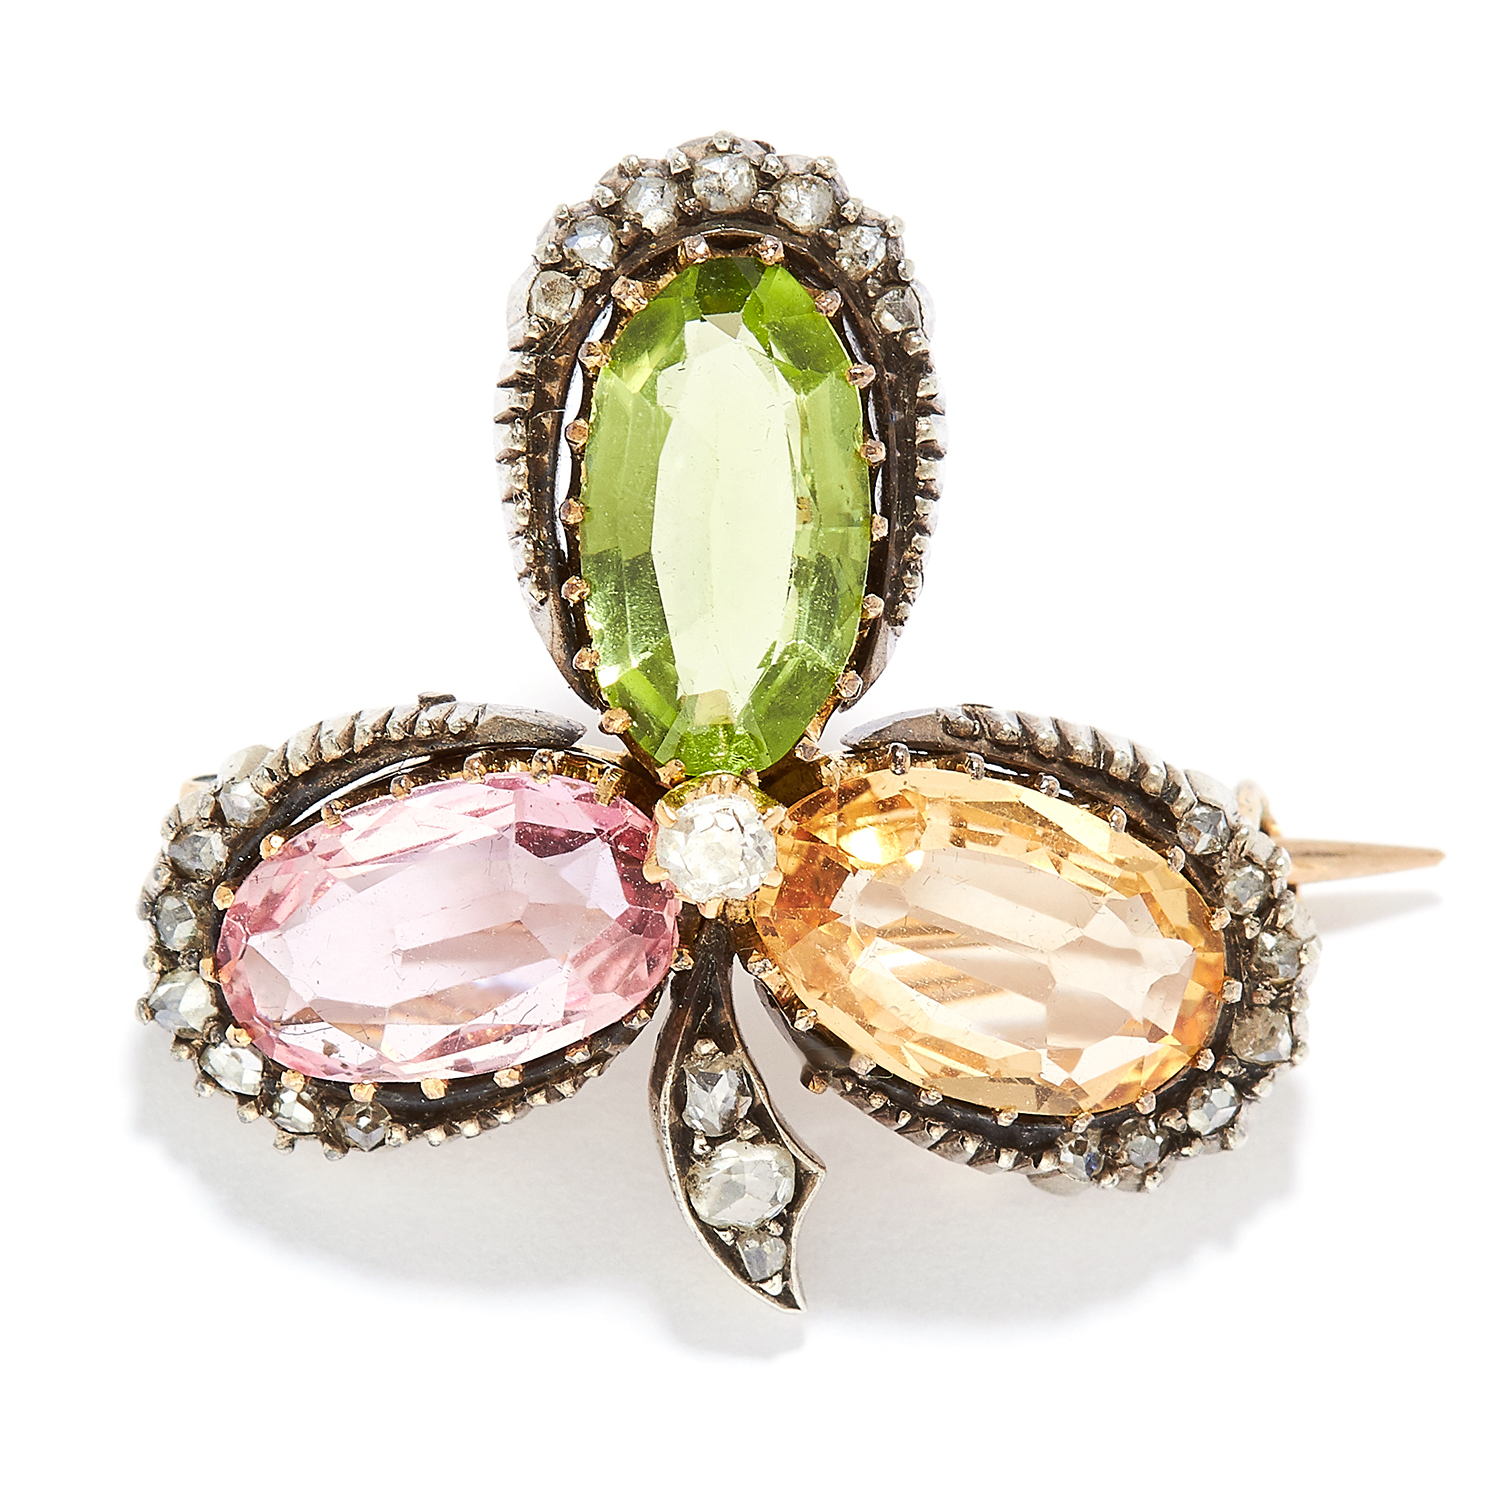 ANTIQUE PERIDOT, TOPAZ AND DIAMOND CLOVER BROOCH in yellow gold, set with an oval cut peridot,